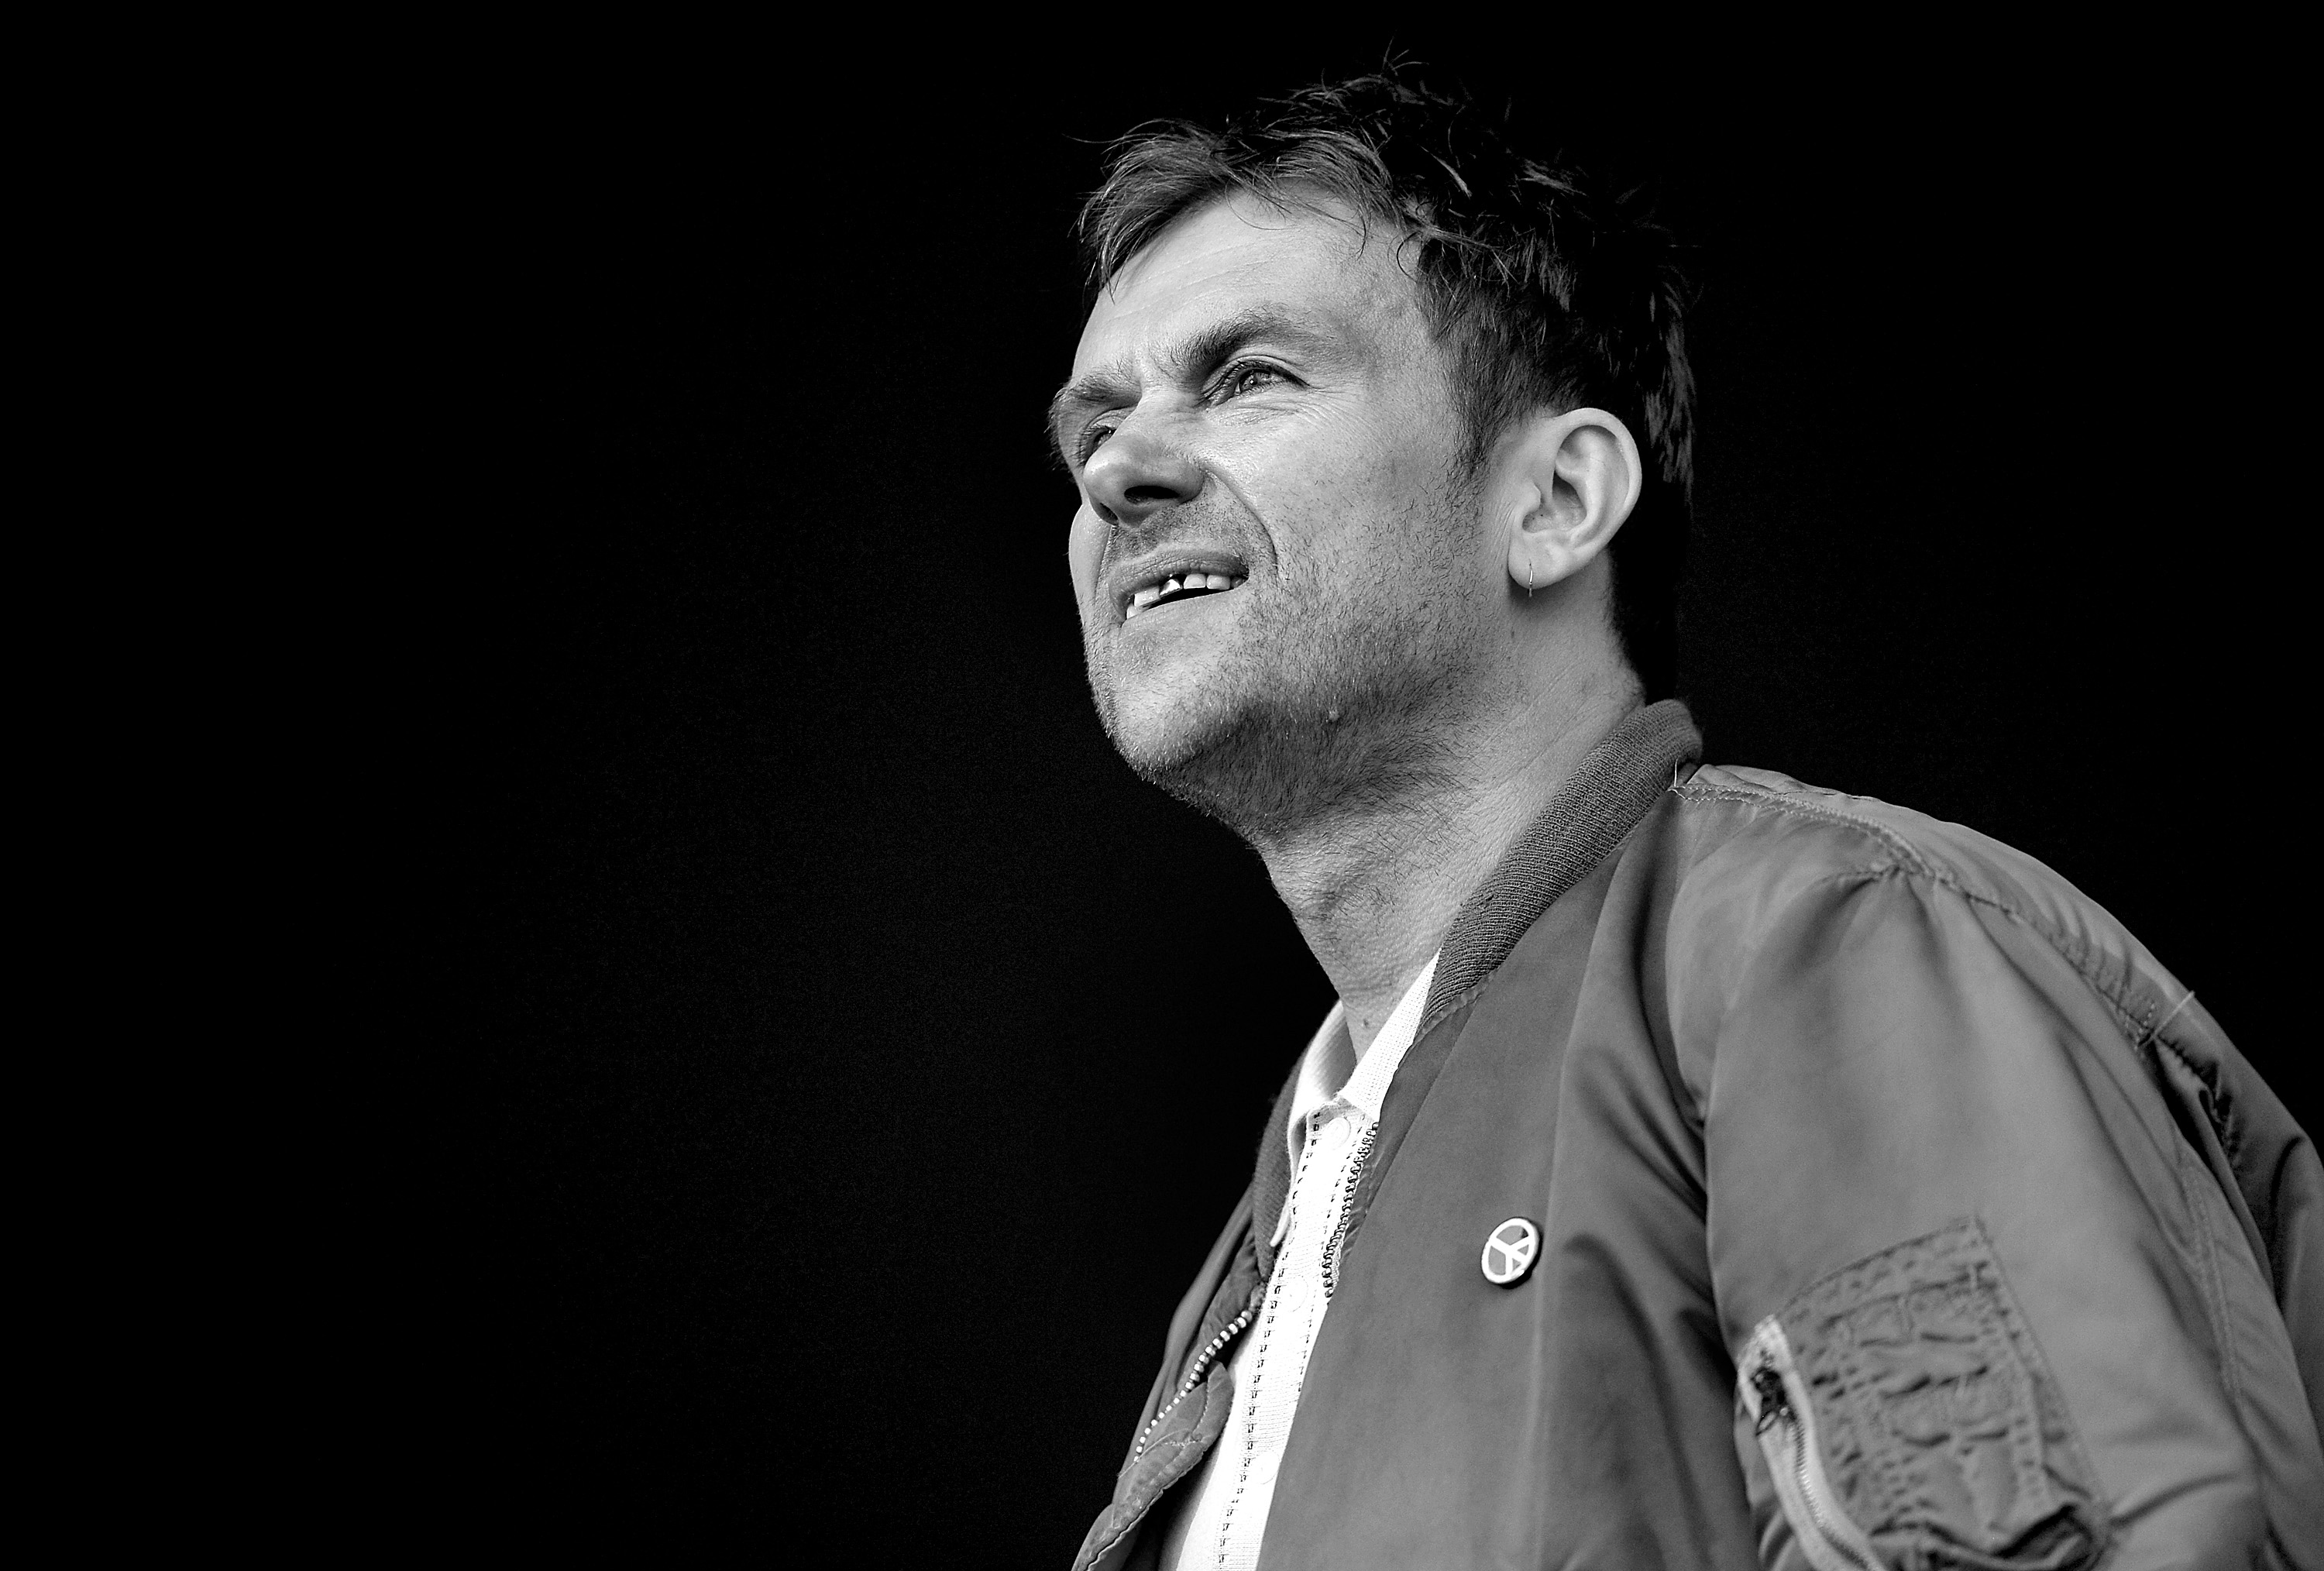 LONDON, ENGLAND - JUNE 20:  SUN NEWSPAPER OUT. MANDATORY CREDIT PHOTO BY DAVE J. HOGAN GETTY IMAGES REQUIRED  Damon Albarn of